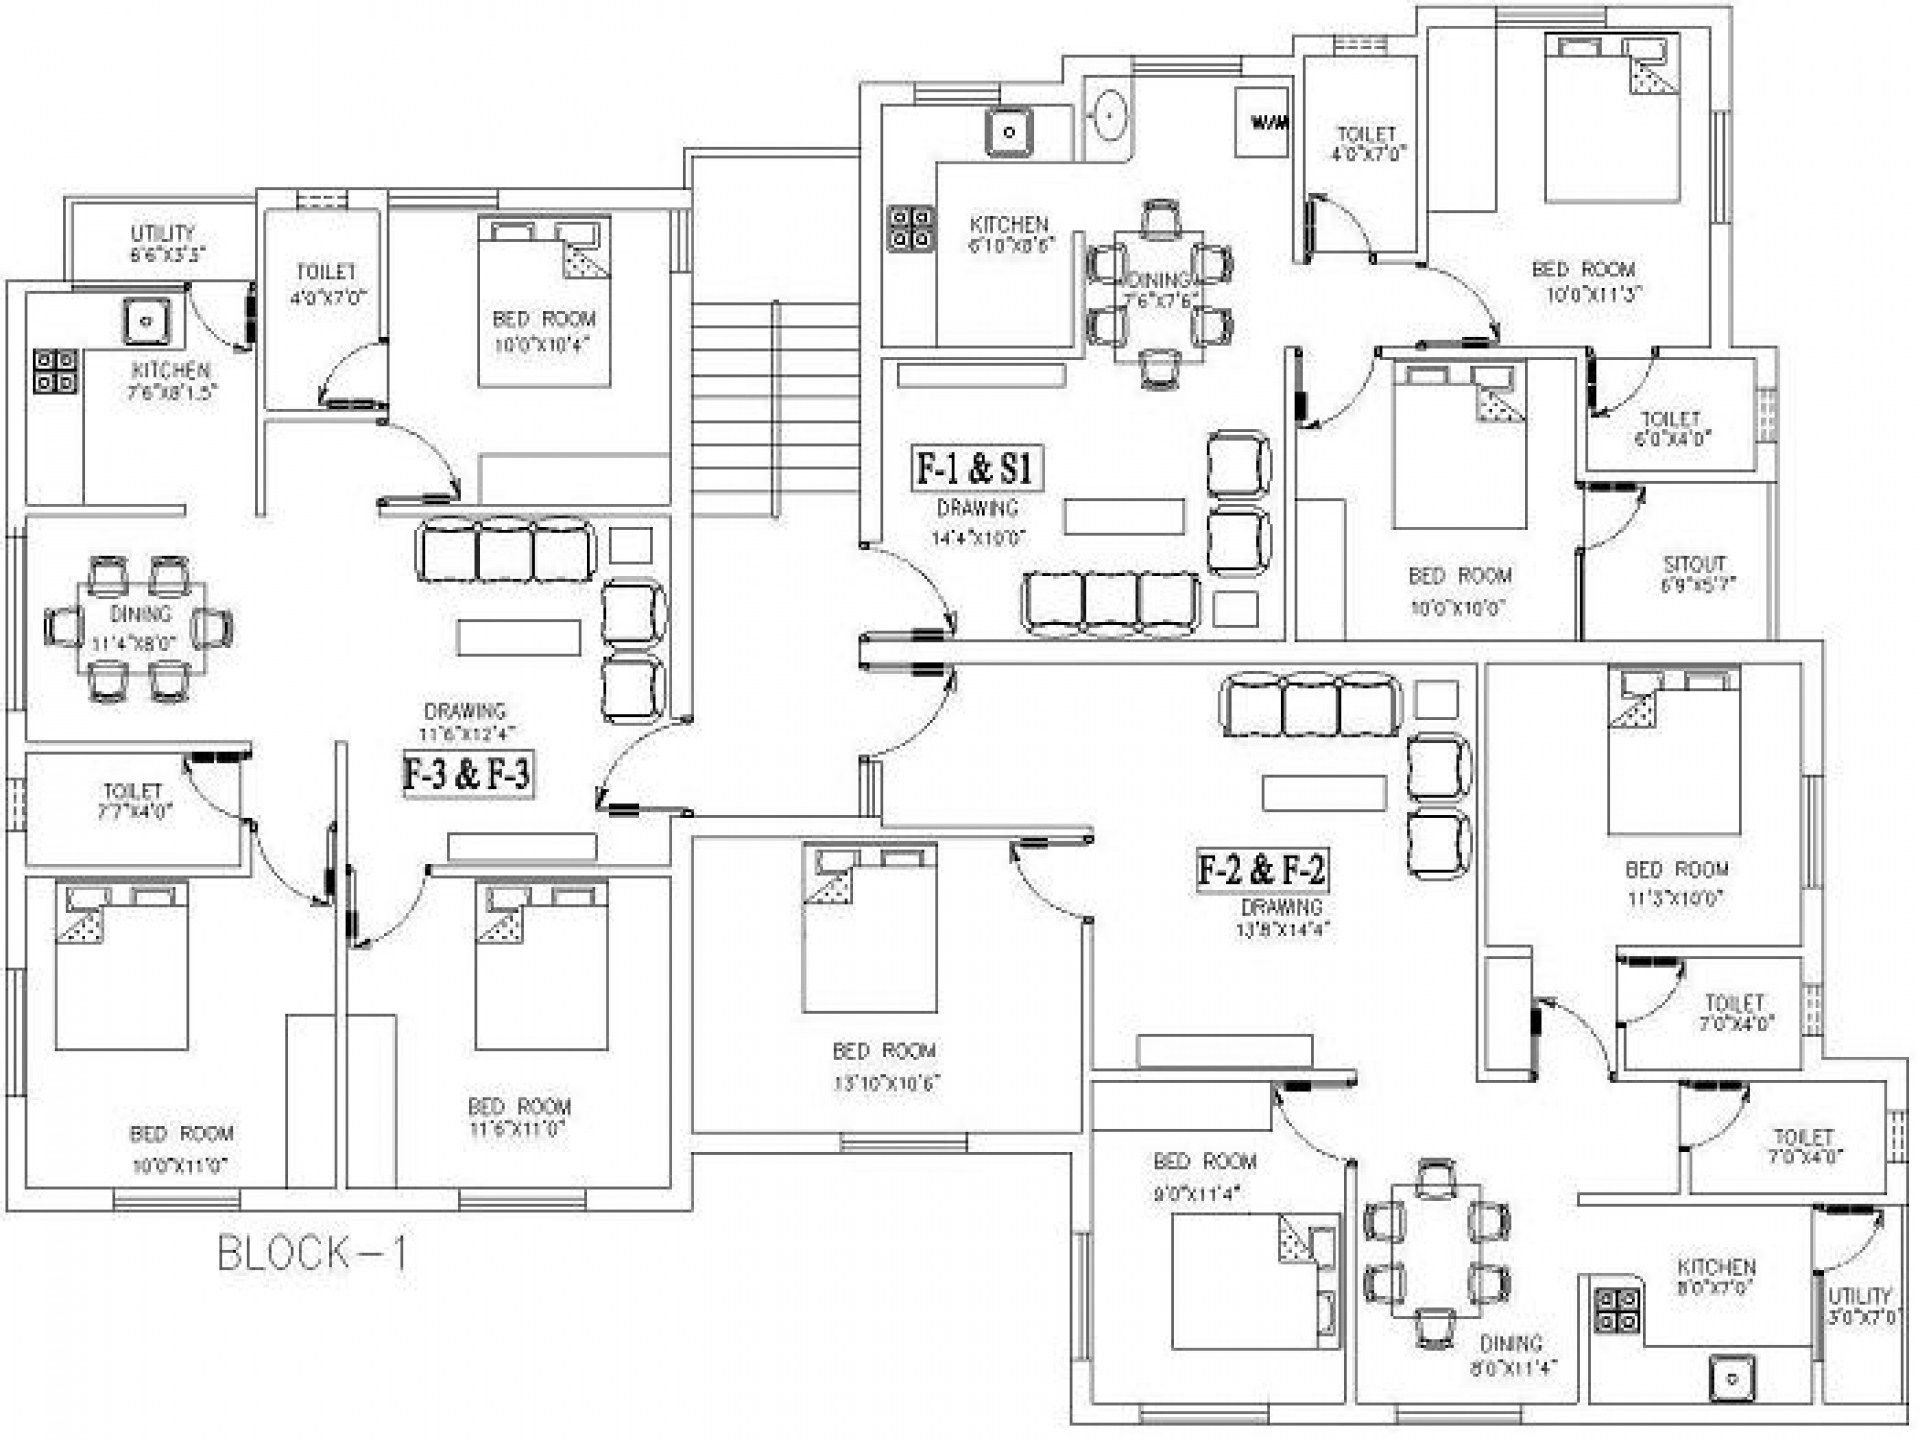 design ideas floor plan designer online modern homes draw floor joanna ford interior  design melbourne floor